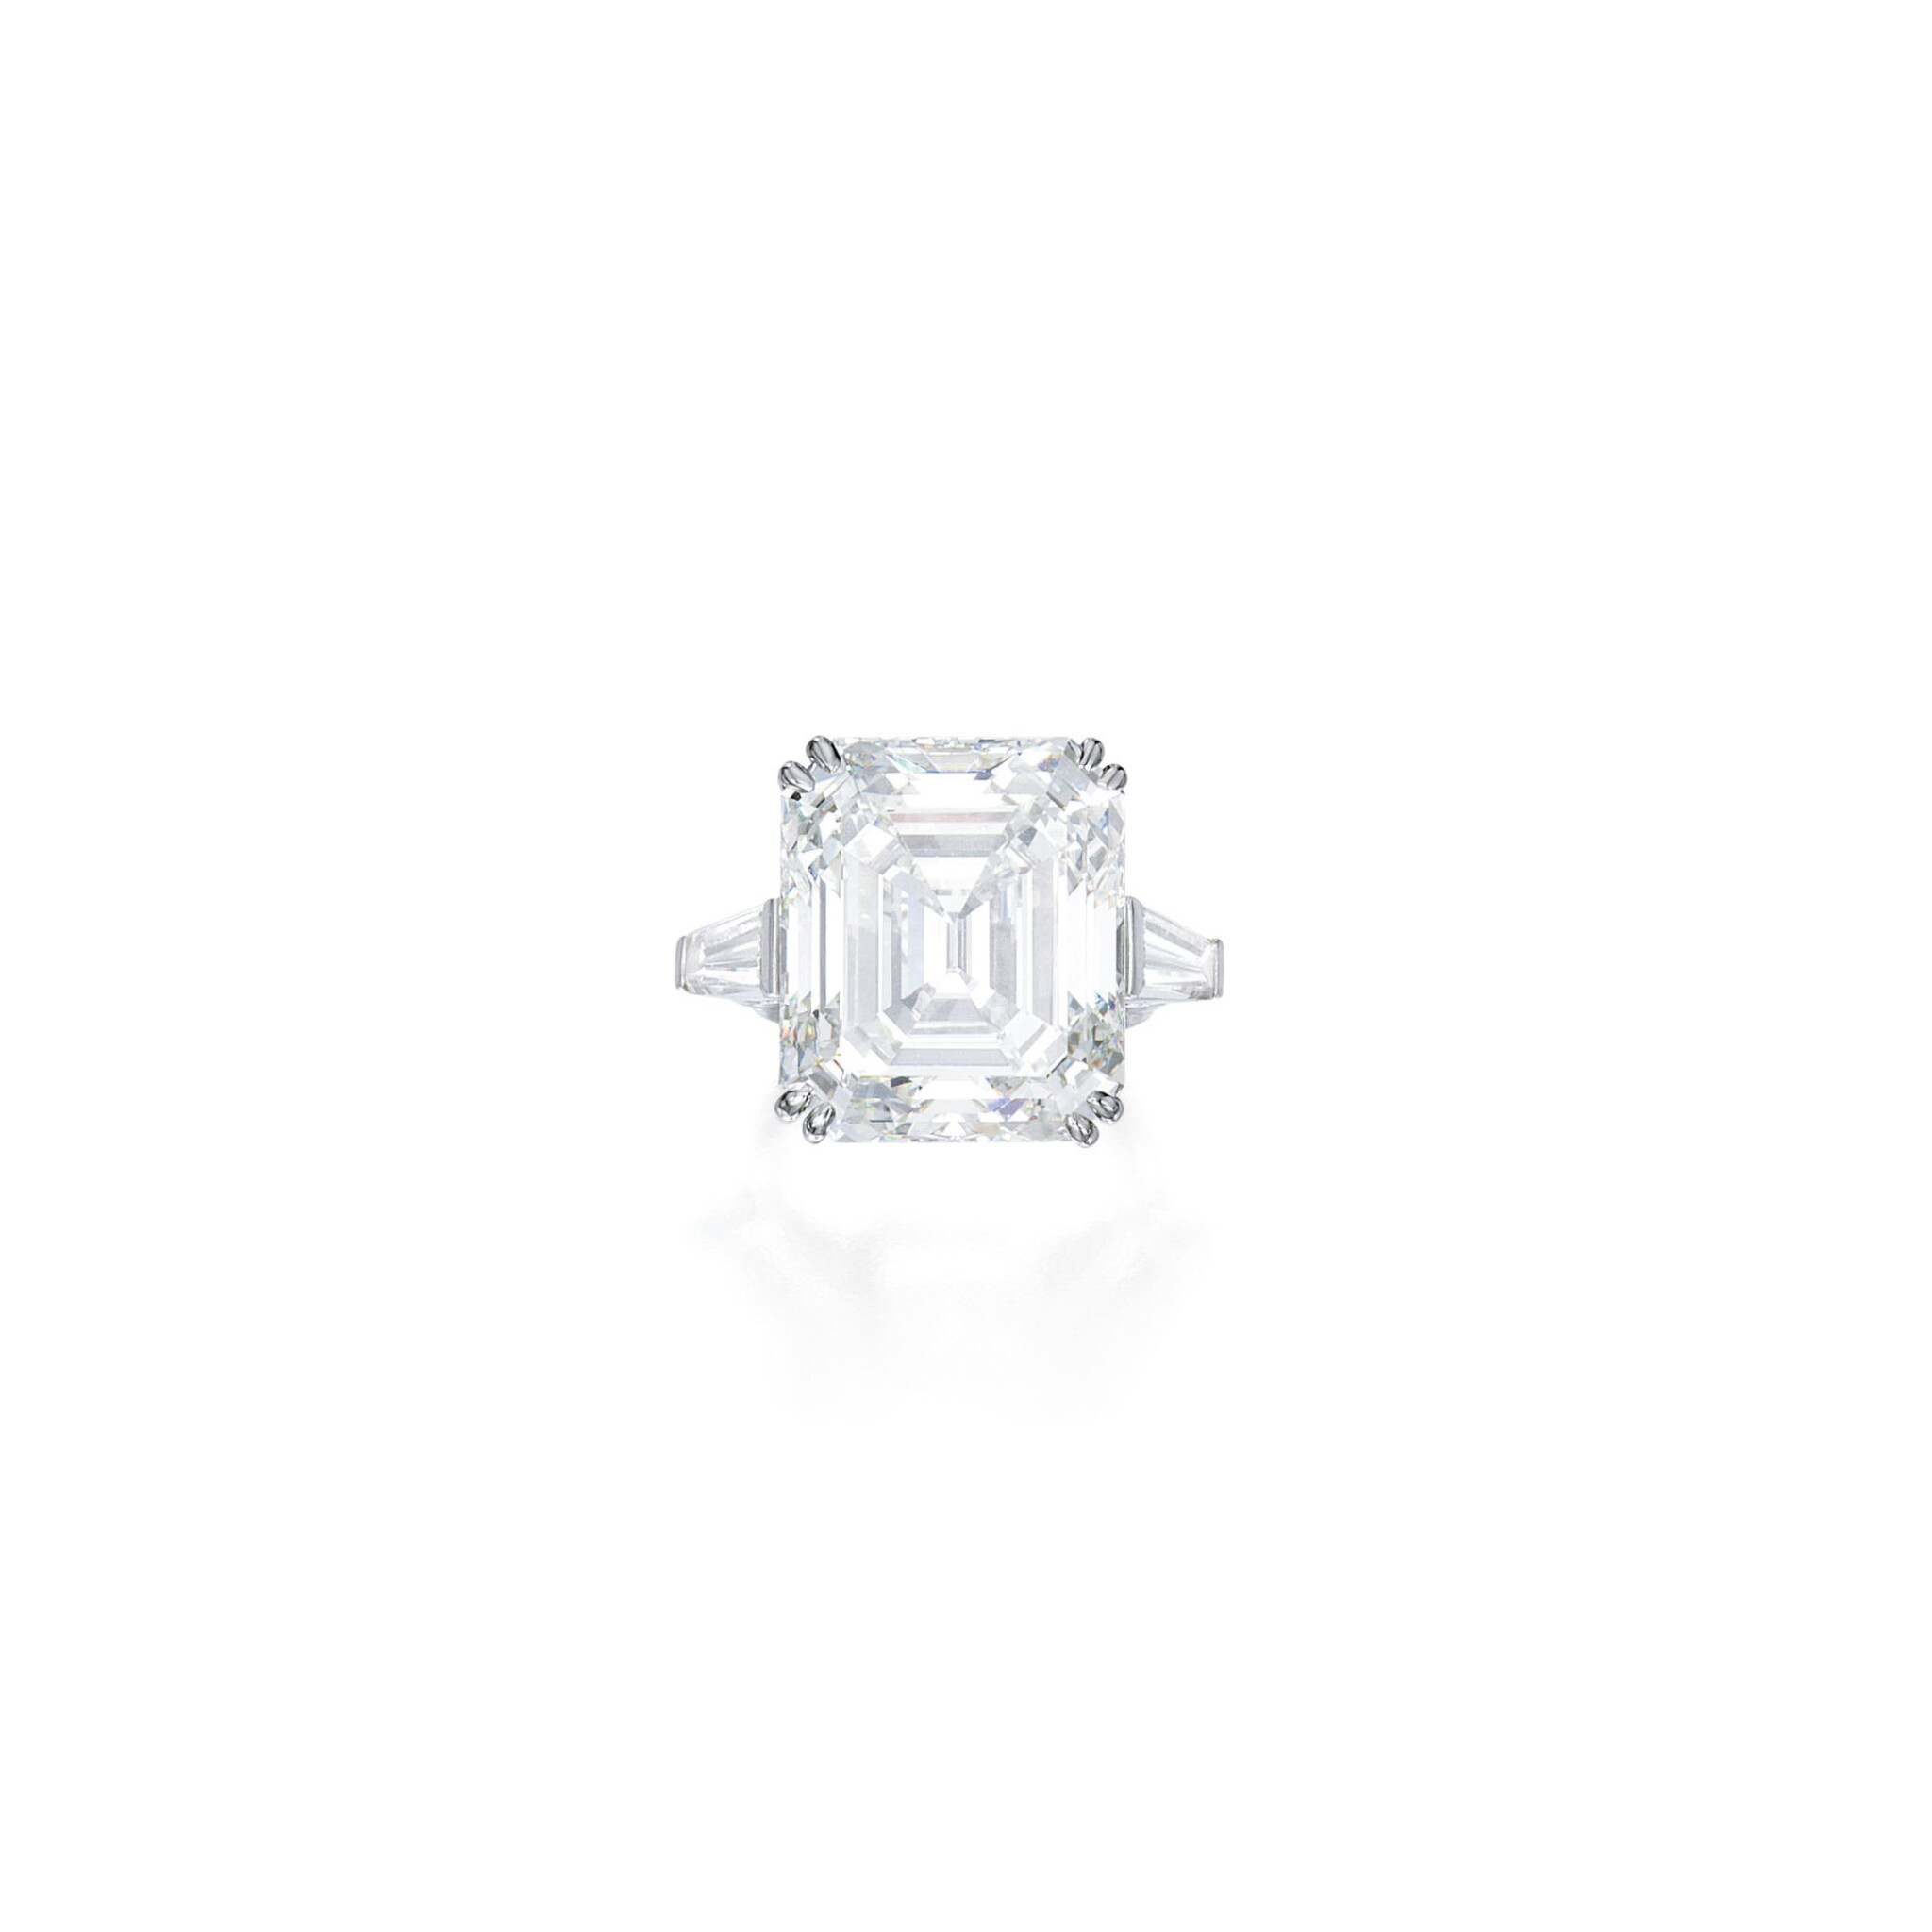 View full screen - View 1 of Lot 444. AN IMPORTANT DIAMOND RING | 鑽石戒指一枚.